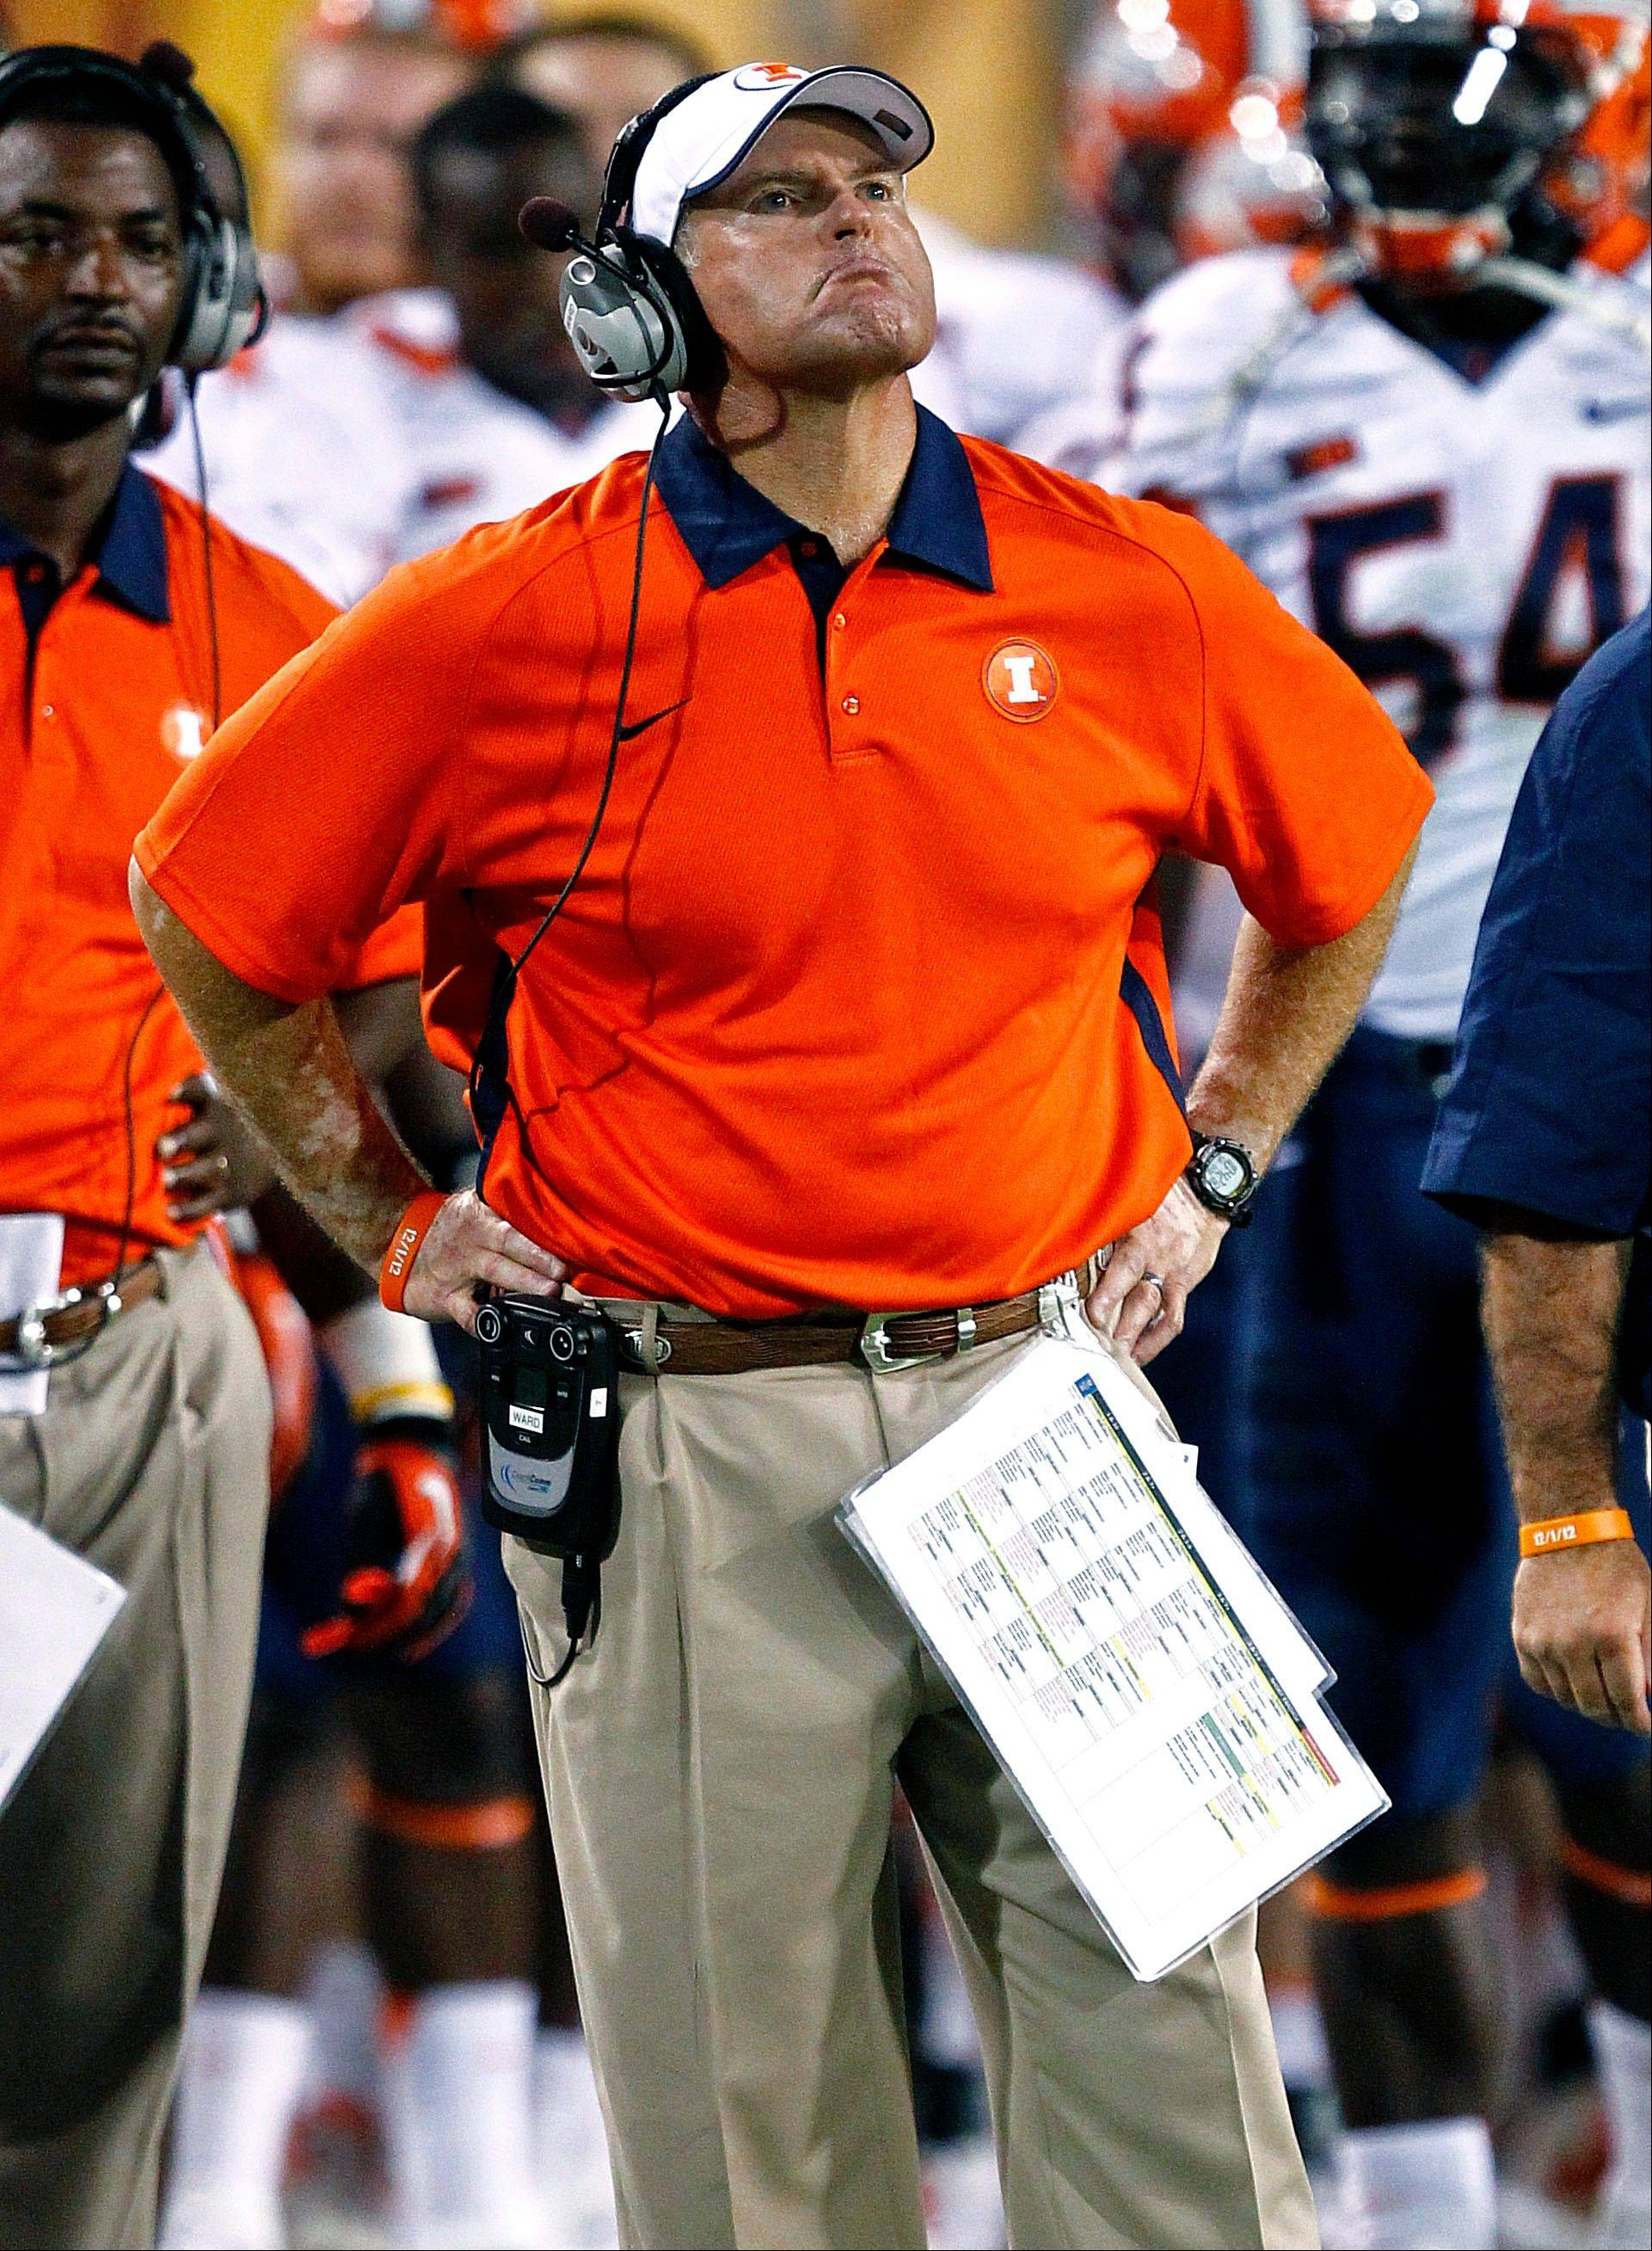 Illinois head coach Tim Beckman looks at the scoreboard during Saturday's first half in Tempe, Ariz.